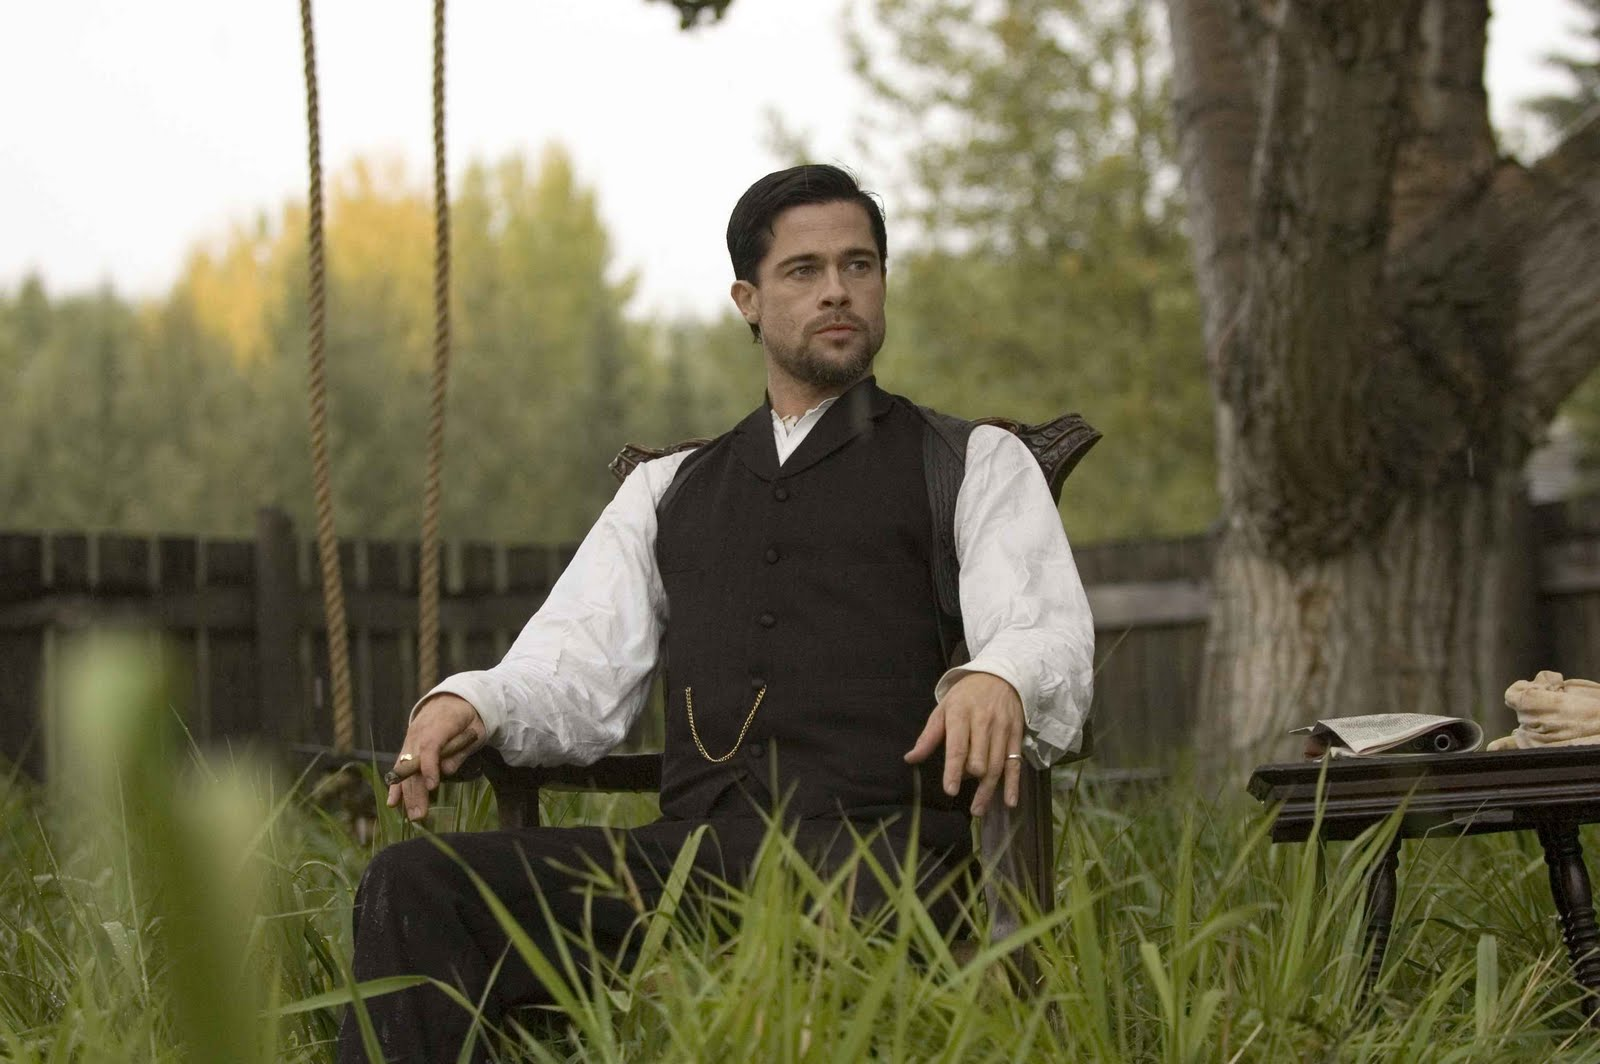 http://2.bp.blogspot.com/_R5WS6_kmmTI/TCtTXYpX2CI/AAAAAAAAw2k/tjyTyAVOr2Q/s1600/2007_the_assassination_of_jesse_james_by_the_coward_robert_ford_011.jpg